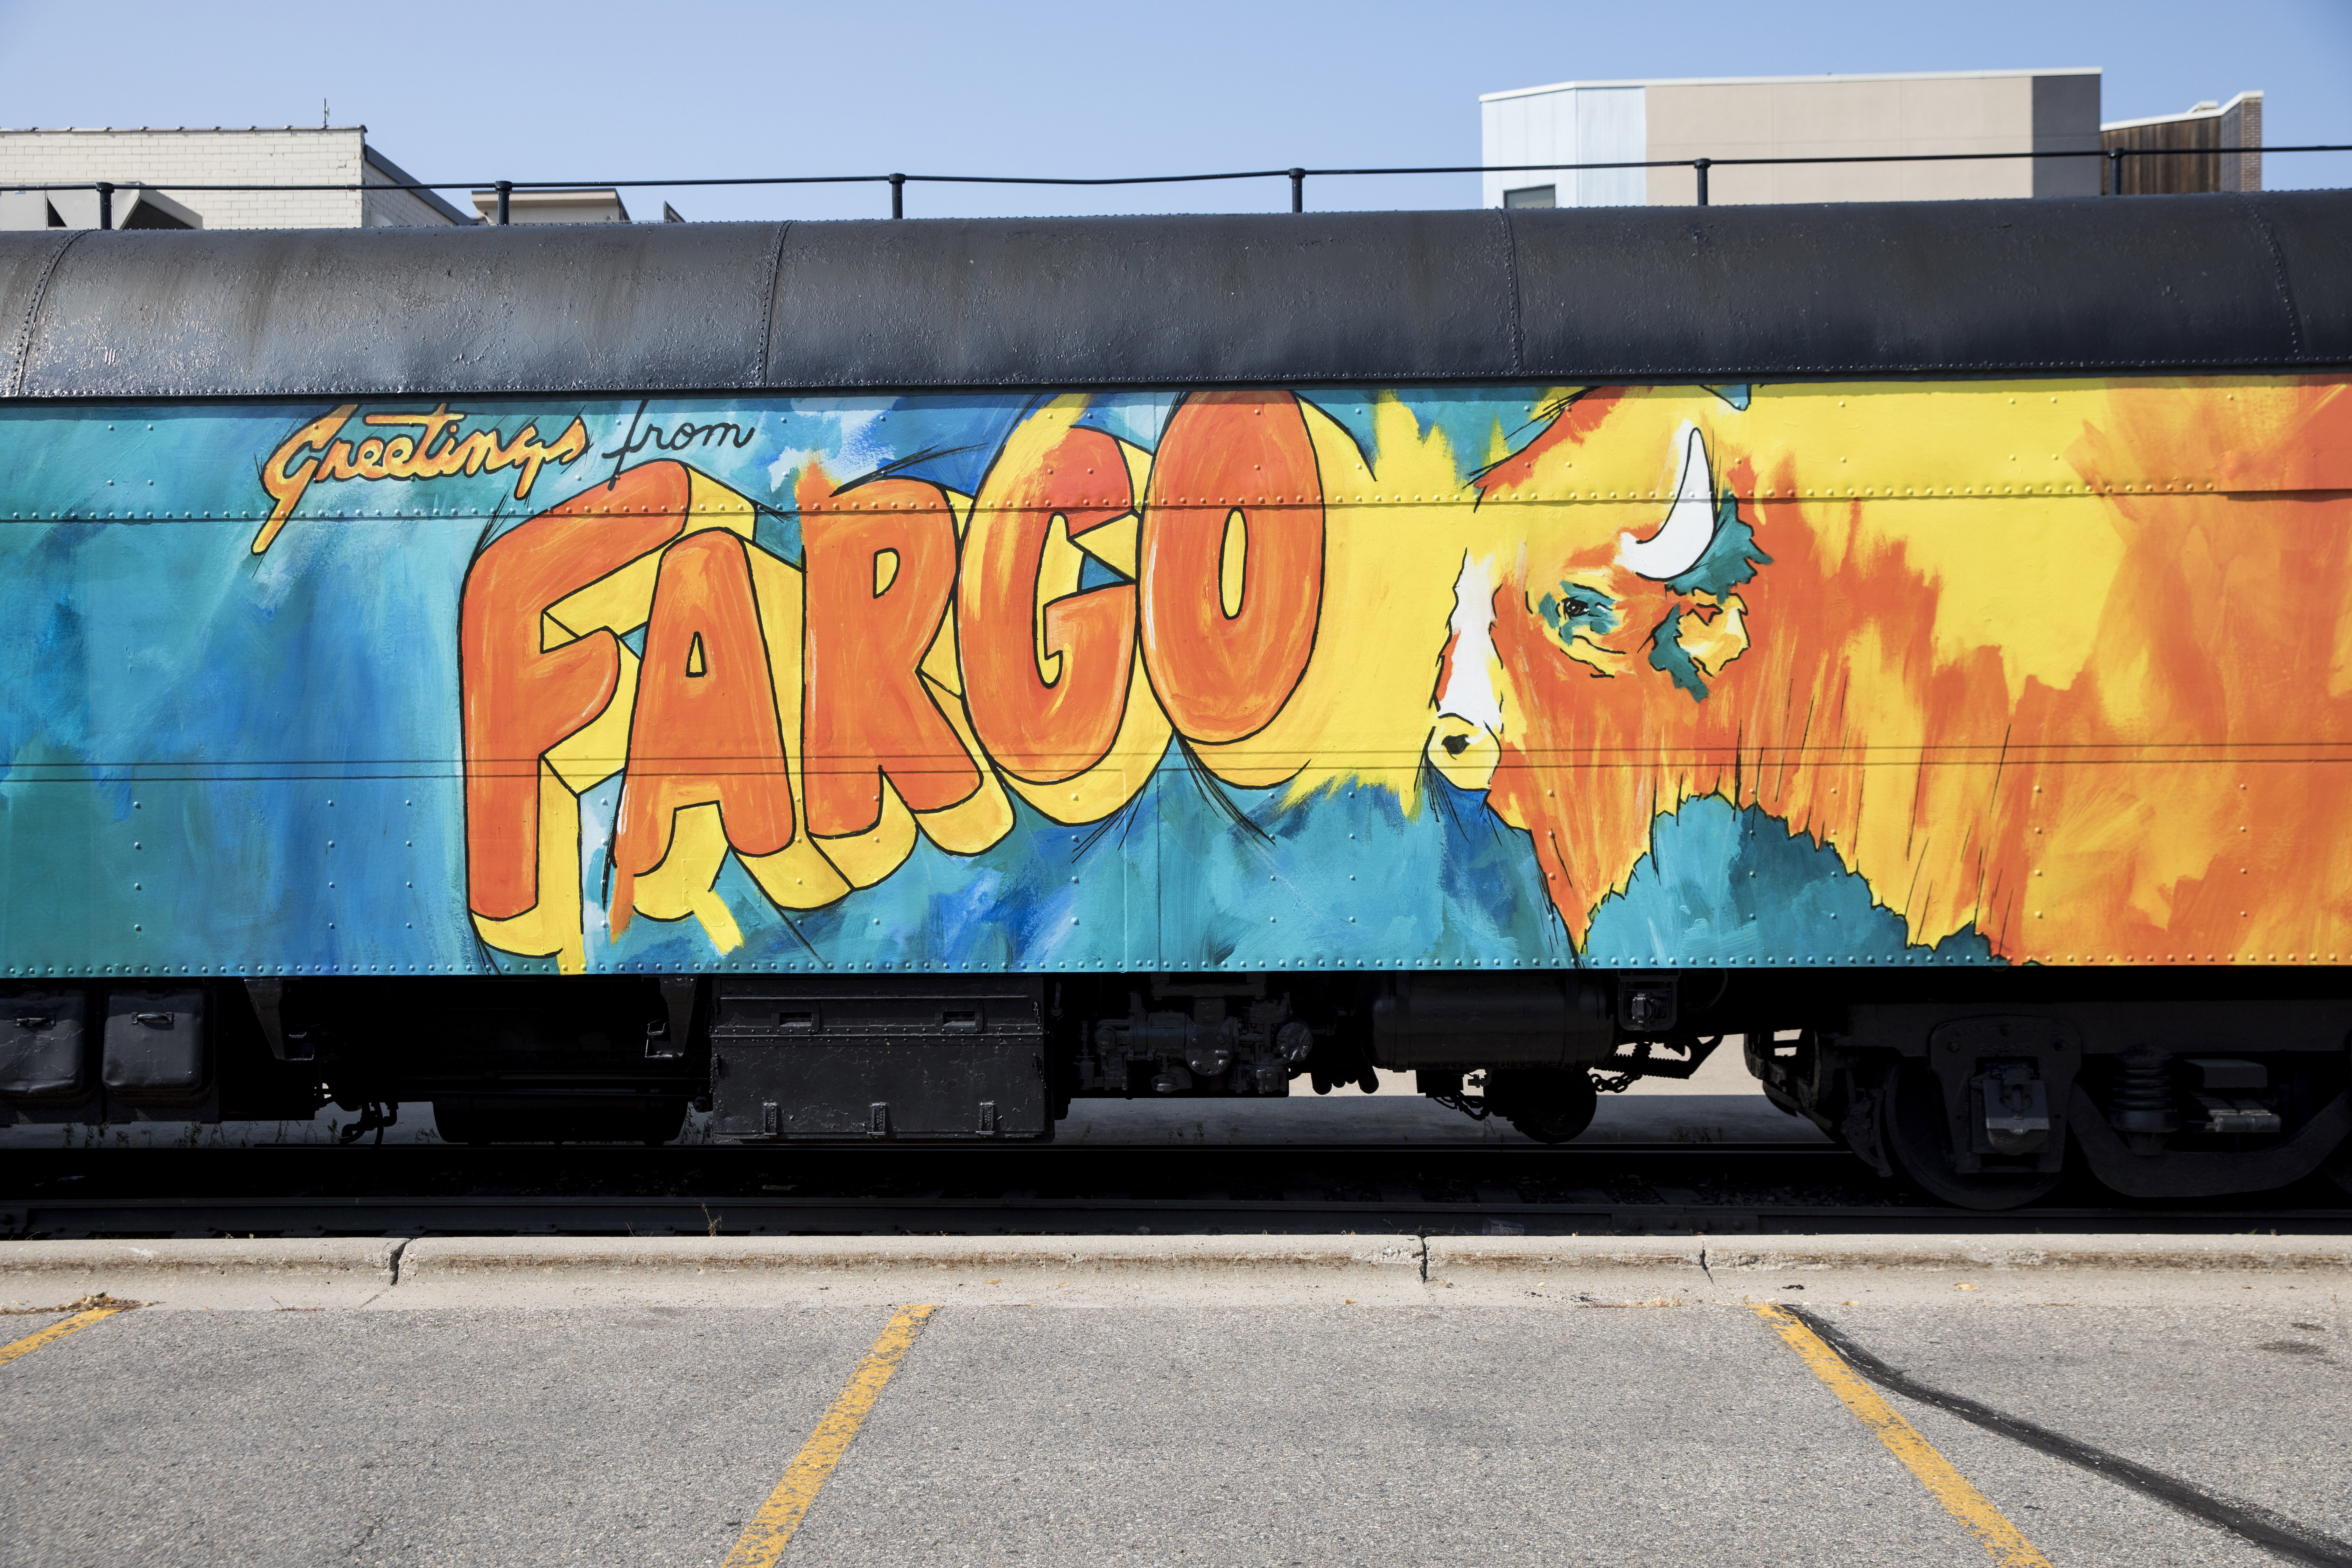 Street art in downtown Fargo, N.D. MUST CREDIT: Photo for The Washington Post by Jenn Ackerman